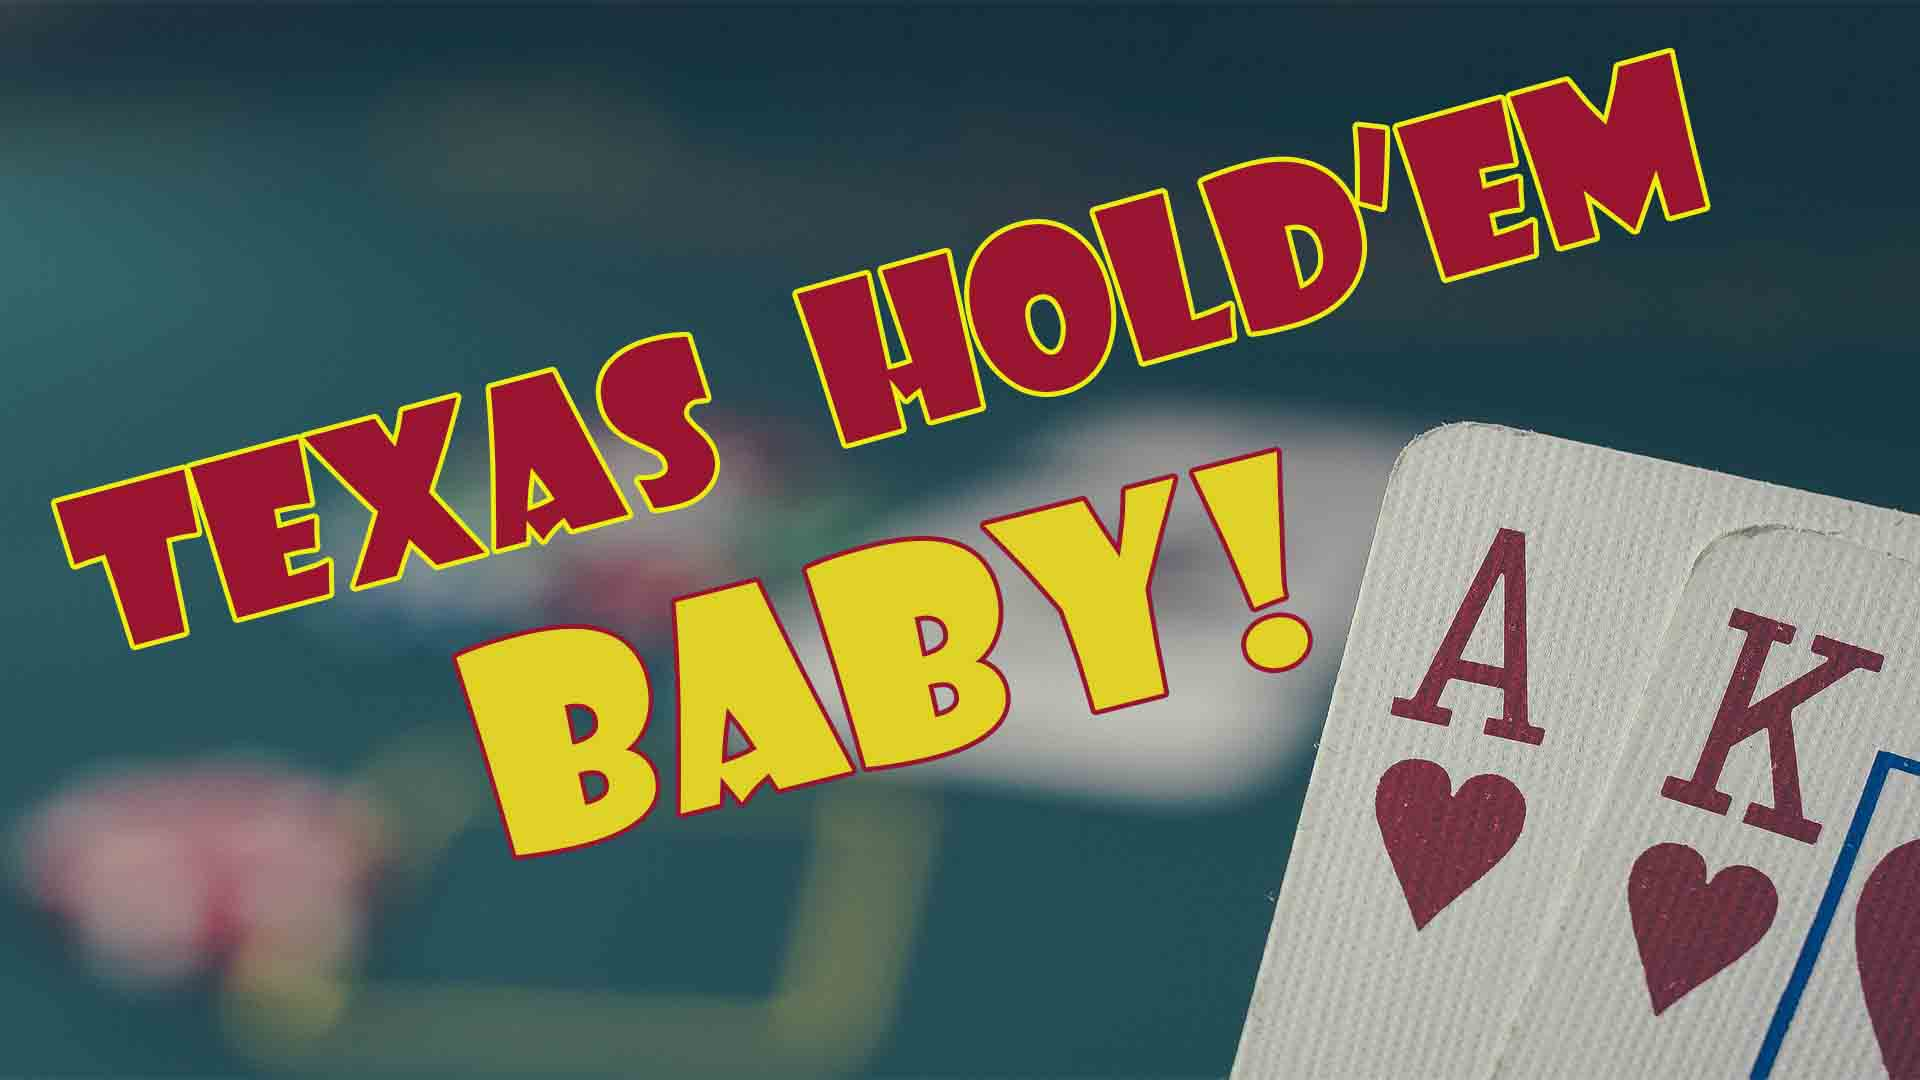 Heads-Up Texas Holdem: Using Aggression To Win